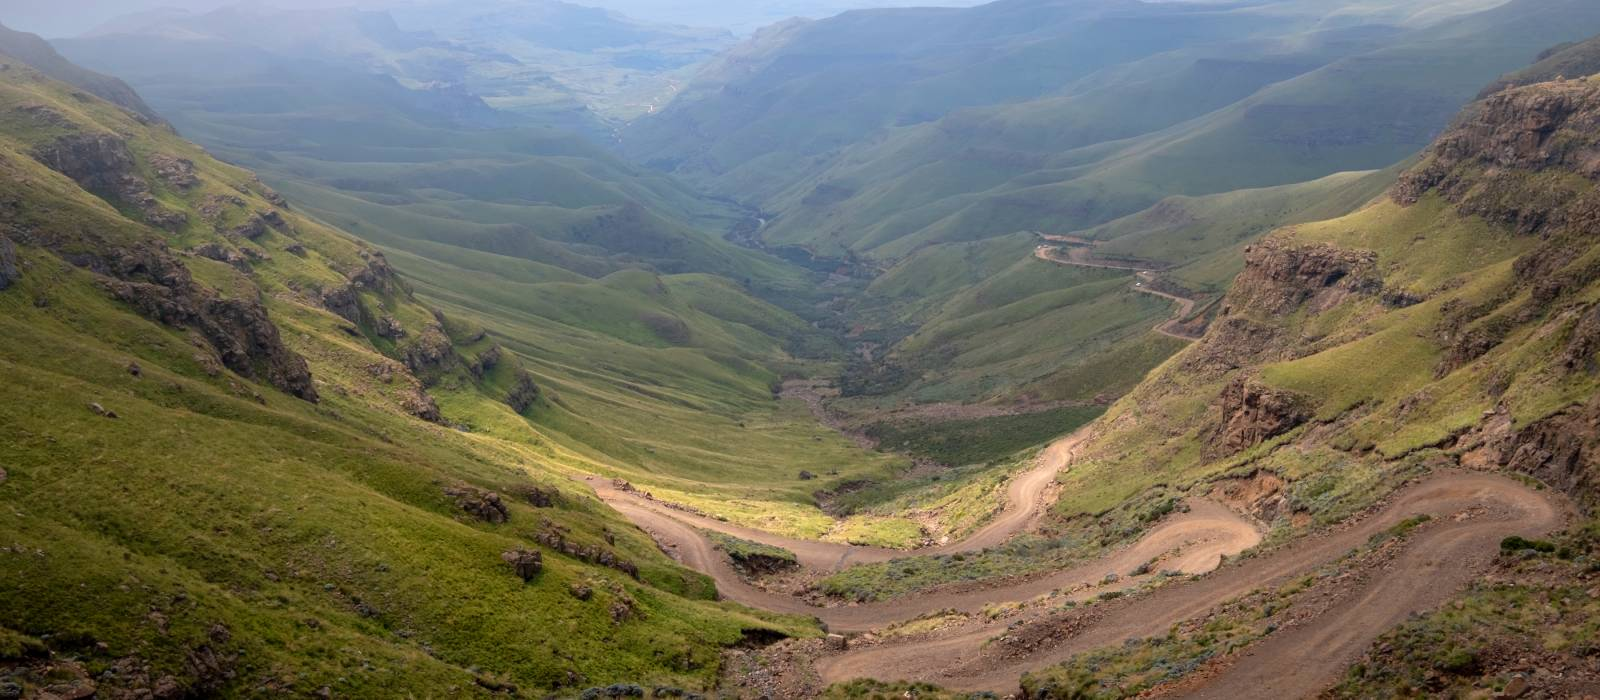 The Sani Pass, winding rural dirt road connecting Underberg in South Africa to Mokhotlong in Lesotho